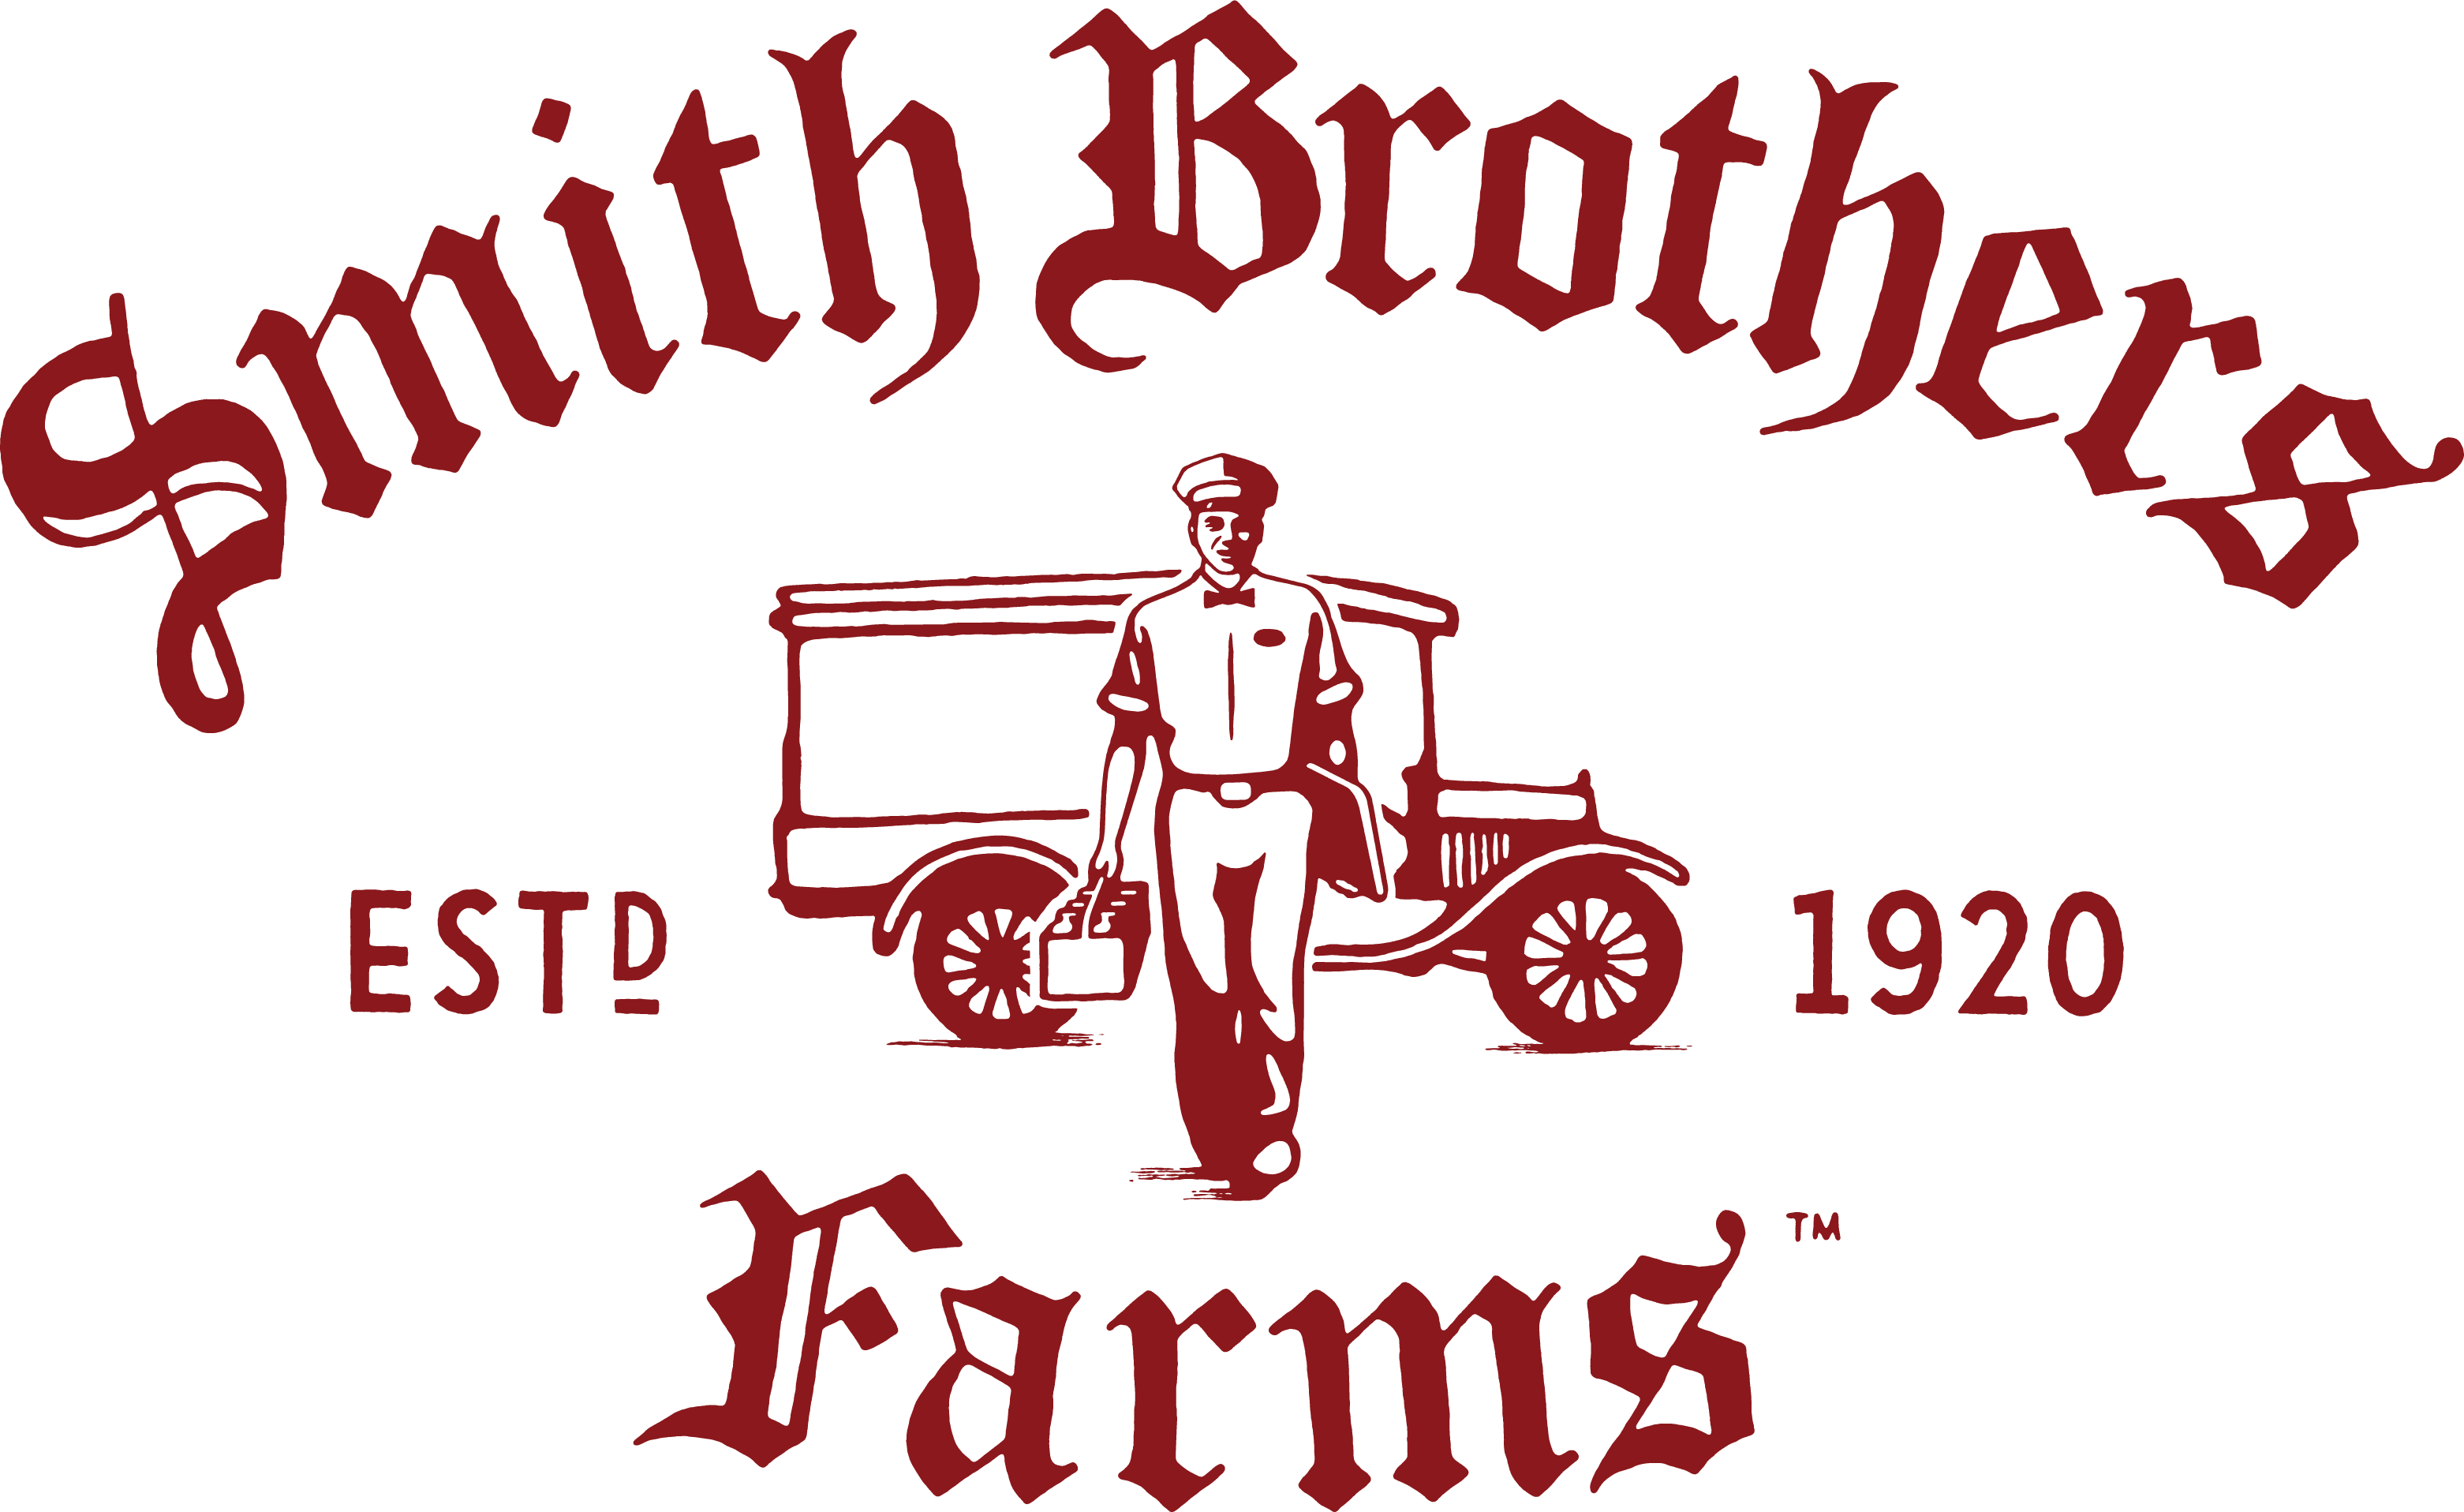 Smith Brothers Farms Logo Clipart Full Size Clipart 3761182 Pinclipart